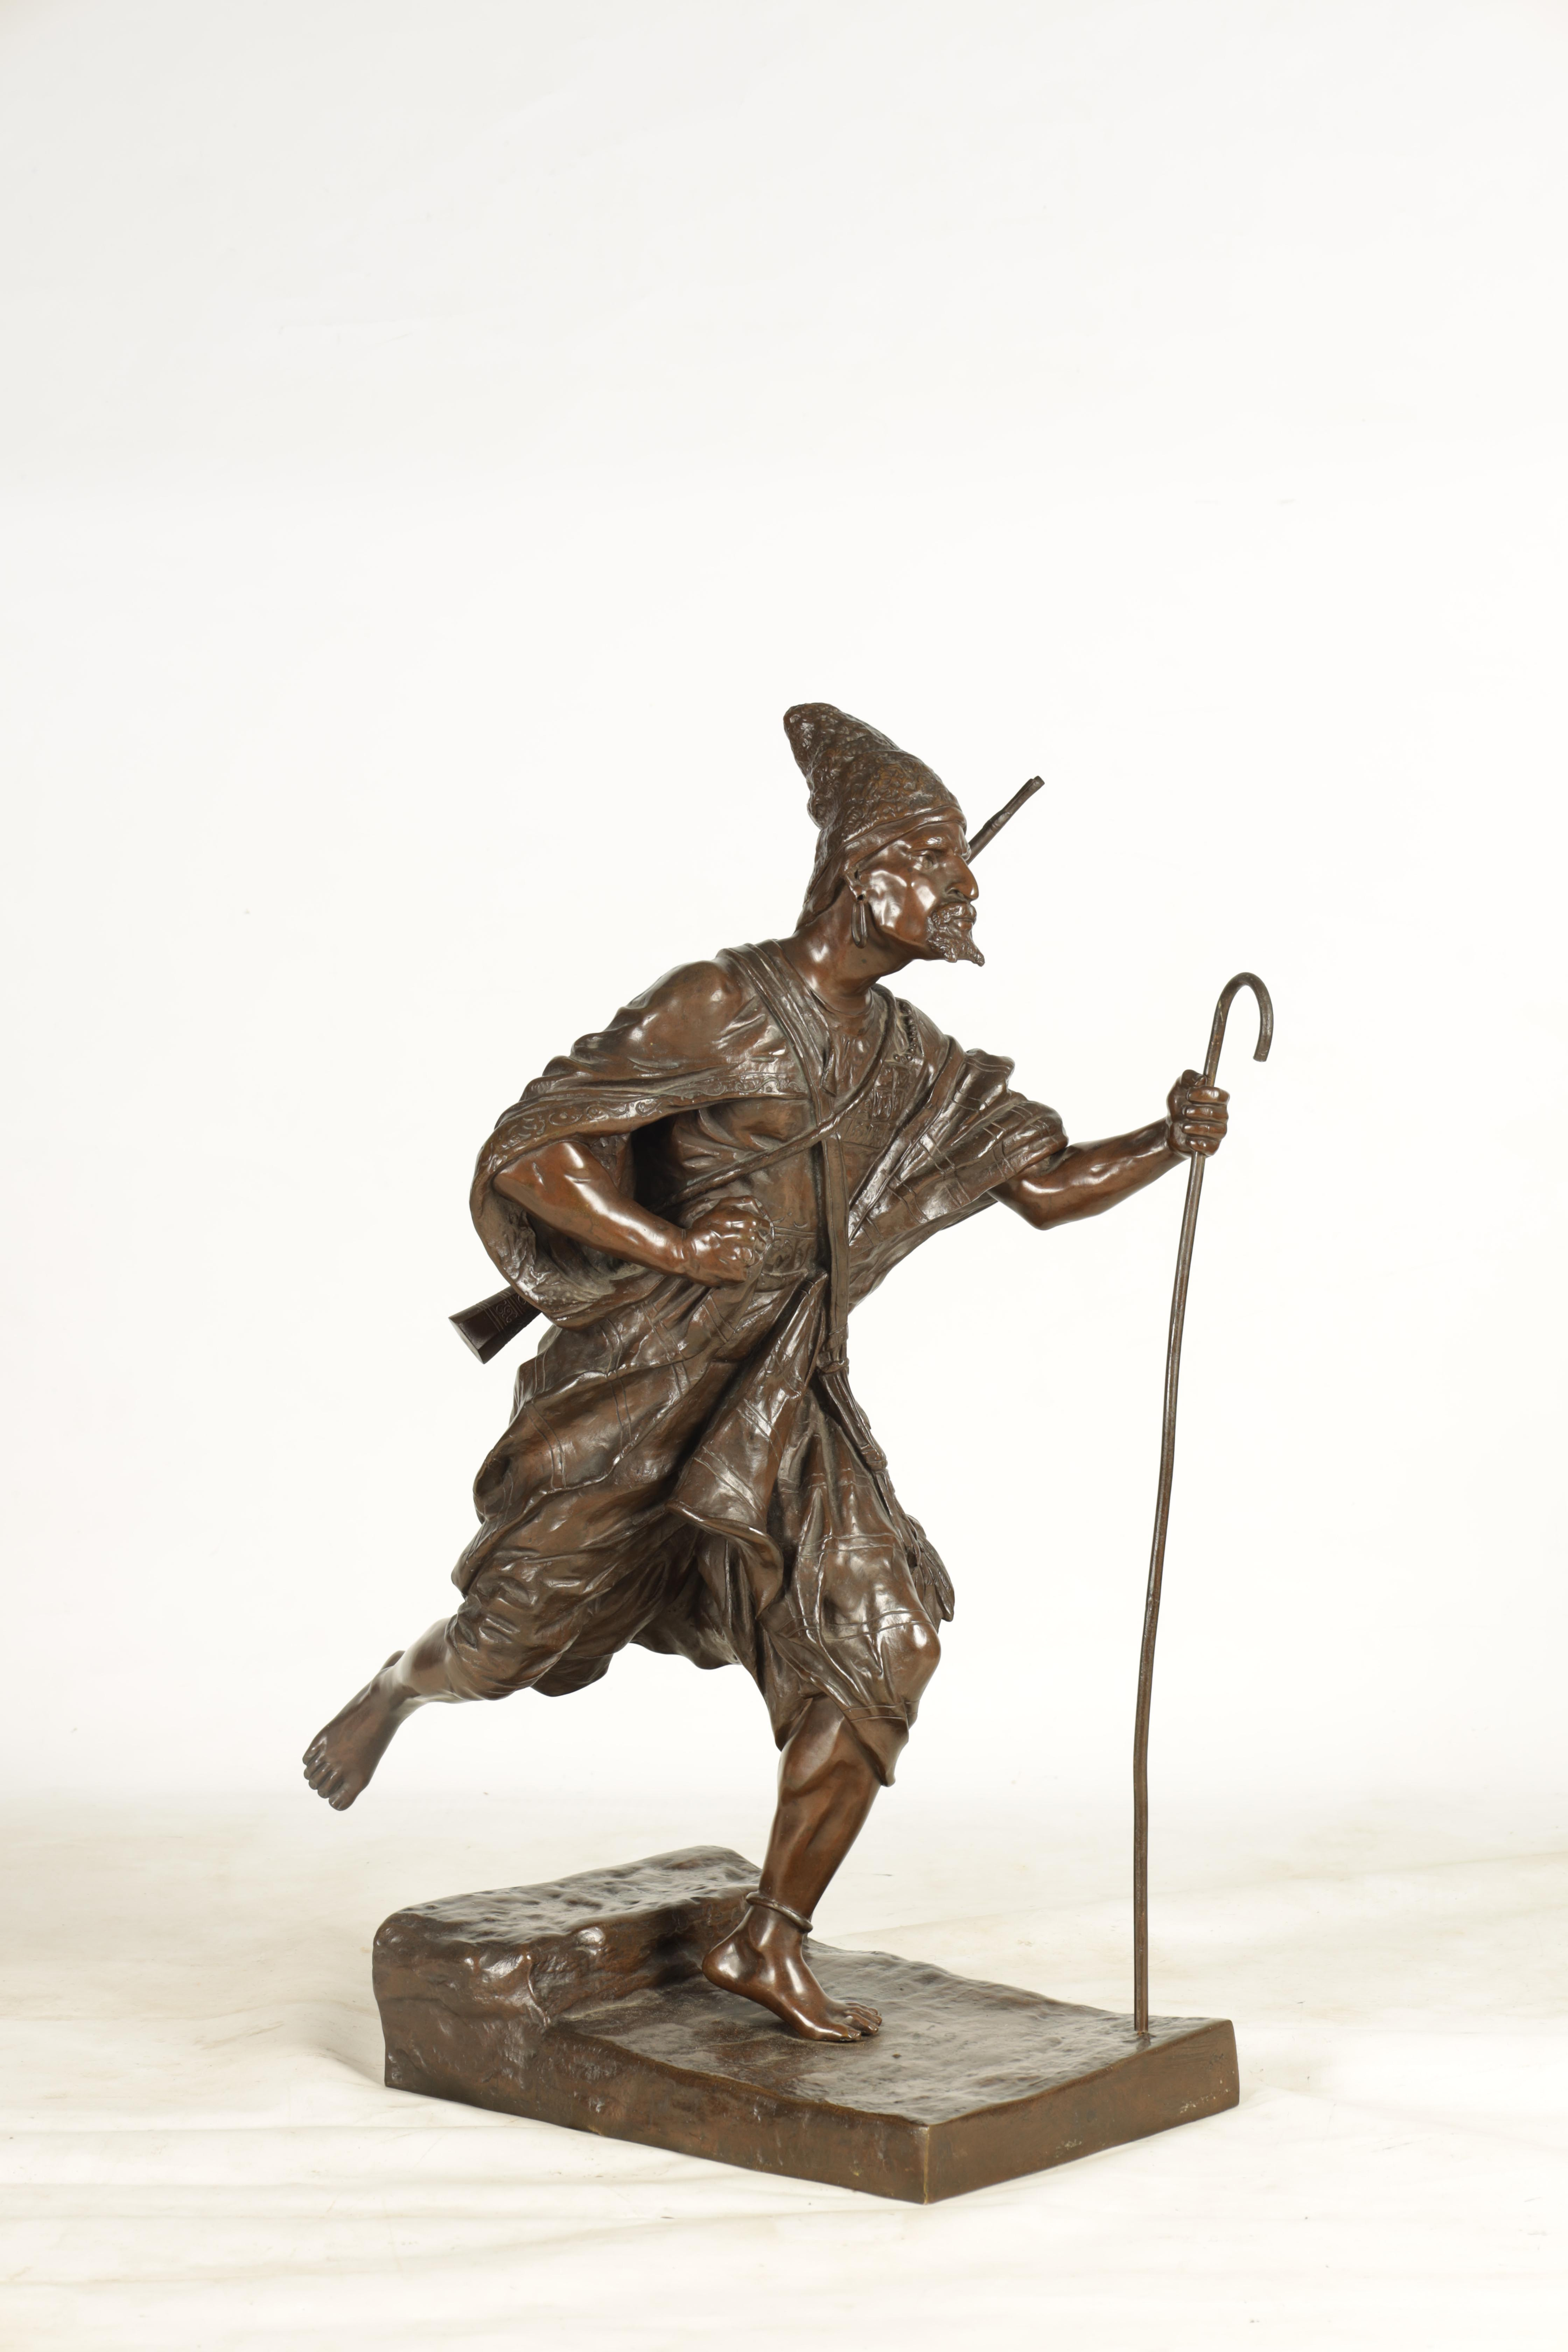 A 19TH CENTURY FRENCH FIGURAL BRONZE depicting an Eastern male figure walking with shepherds crook - Image 3 of 5